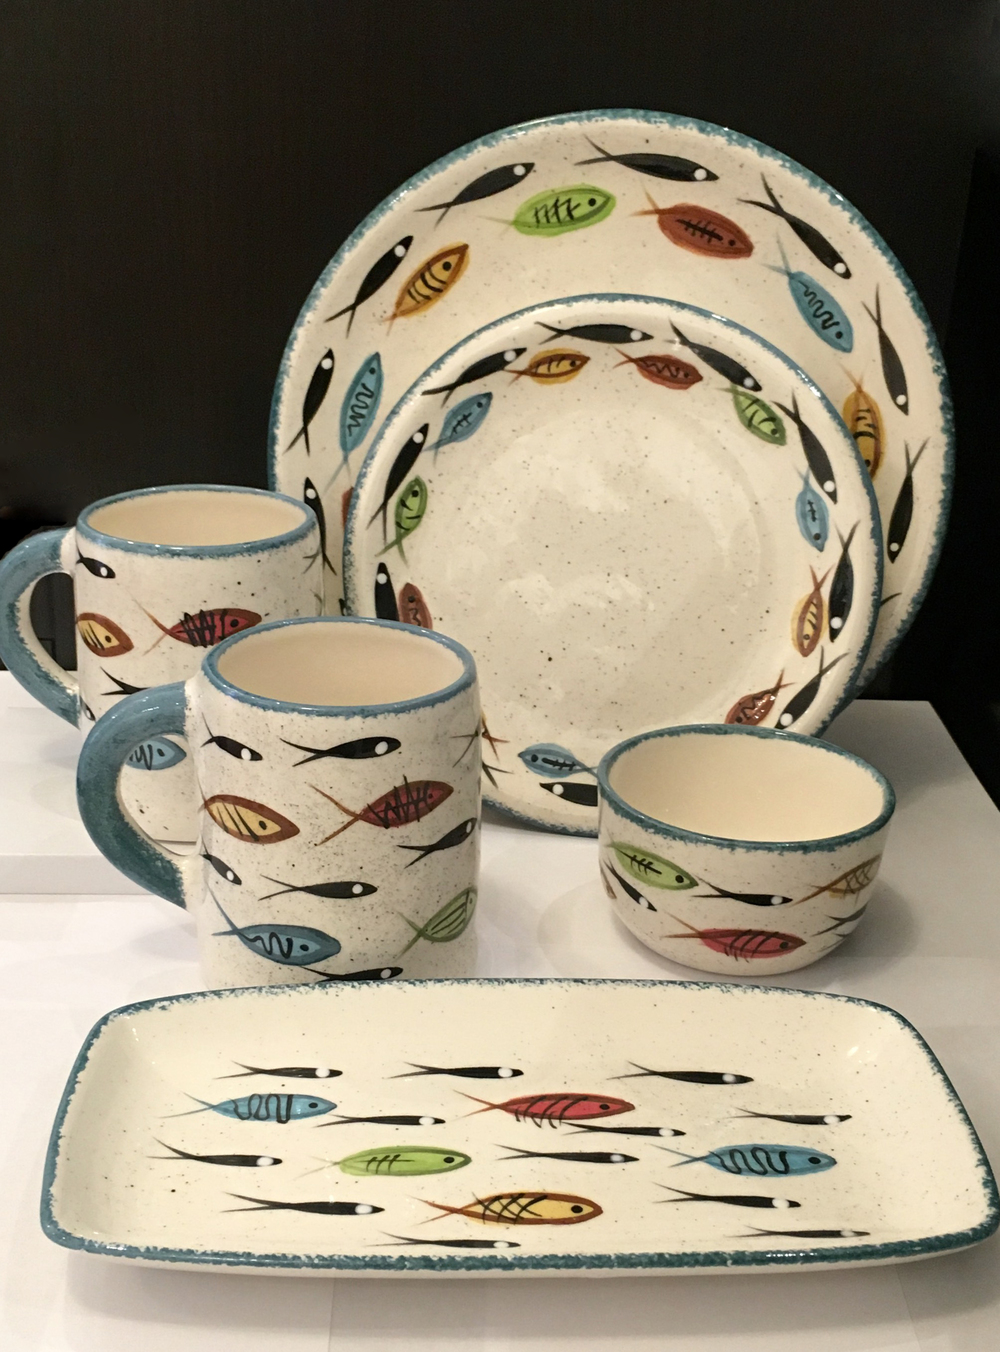 Mugs dinnerware rice bowl and pastry tray in traditional multifish pattern $35- & Jobi Pottery \u2014 13FOREST Gallery